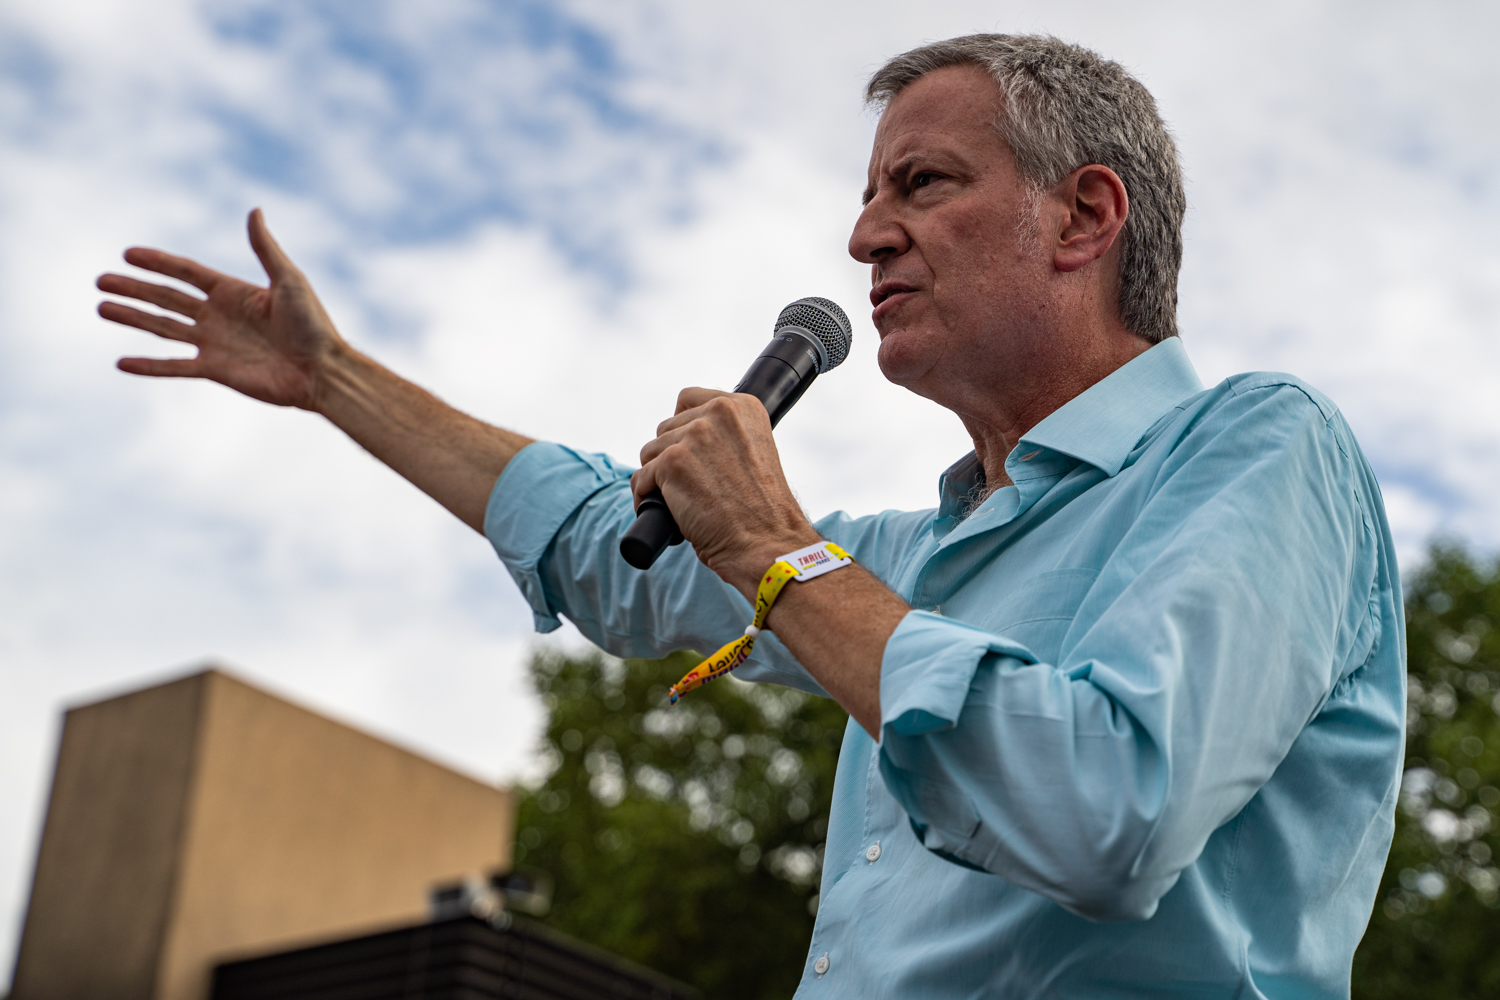 New York City Mayor Bill de Blasio speaks at the Des Moines Register Political Soapbox during the Iowa State Fair in Des Moines, IA on Sunday, August 11, 2019.